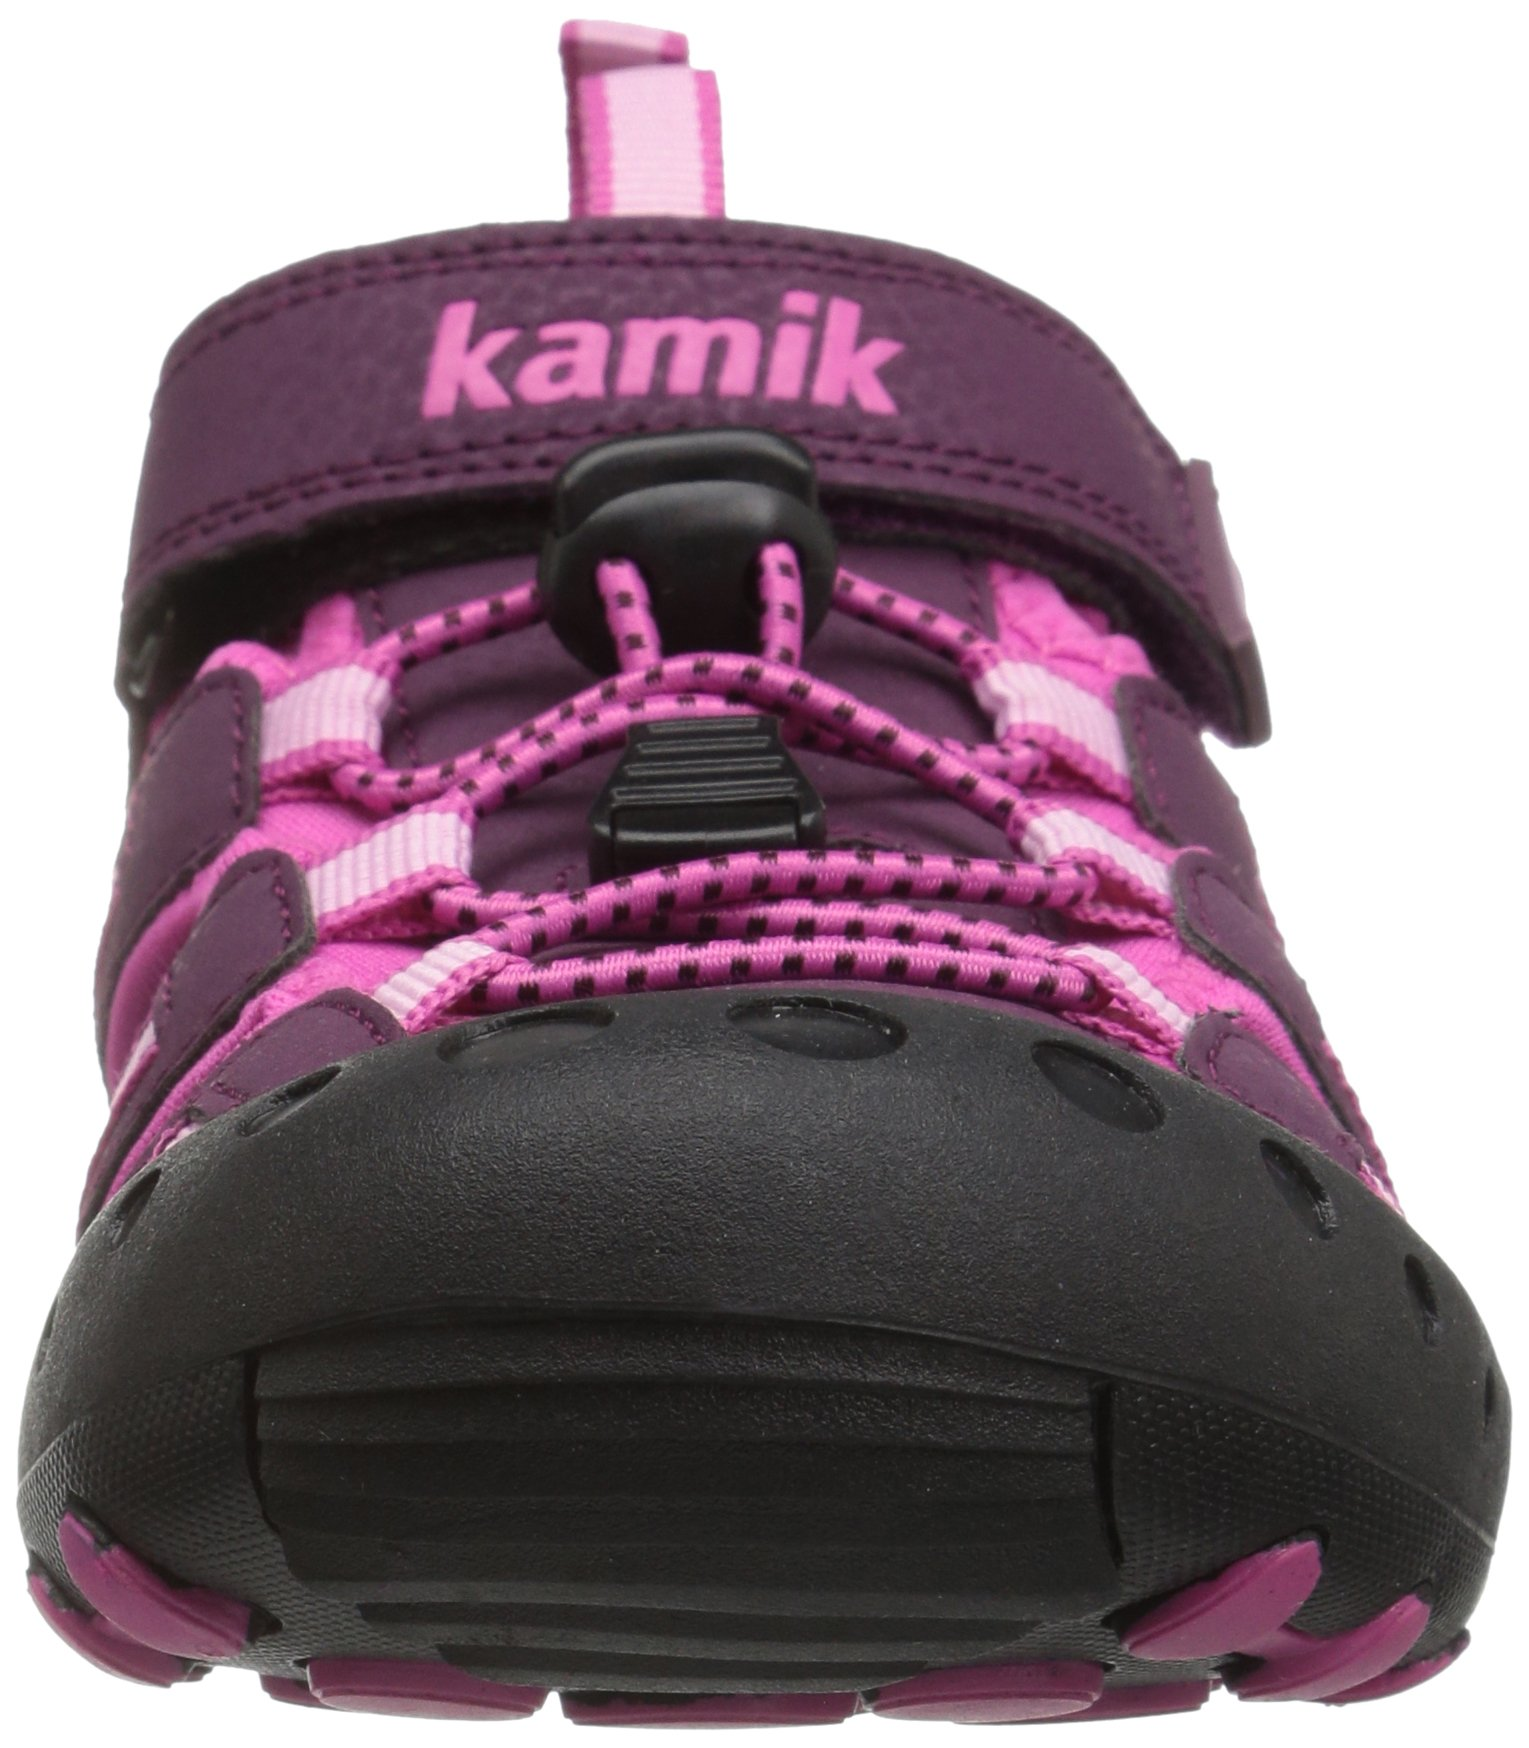 Kamik Toddler Crab Sandals Plum 4 by Kamik (Image #4)